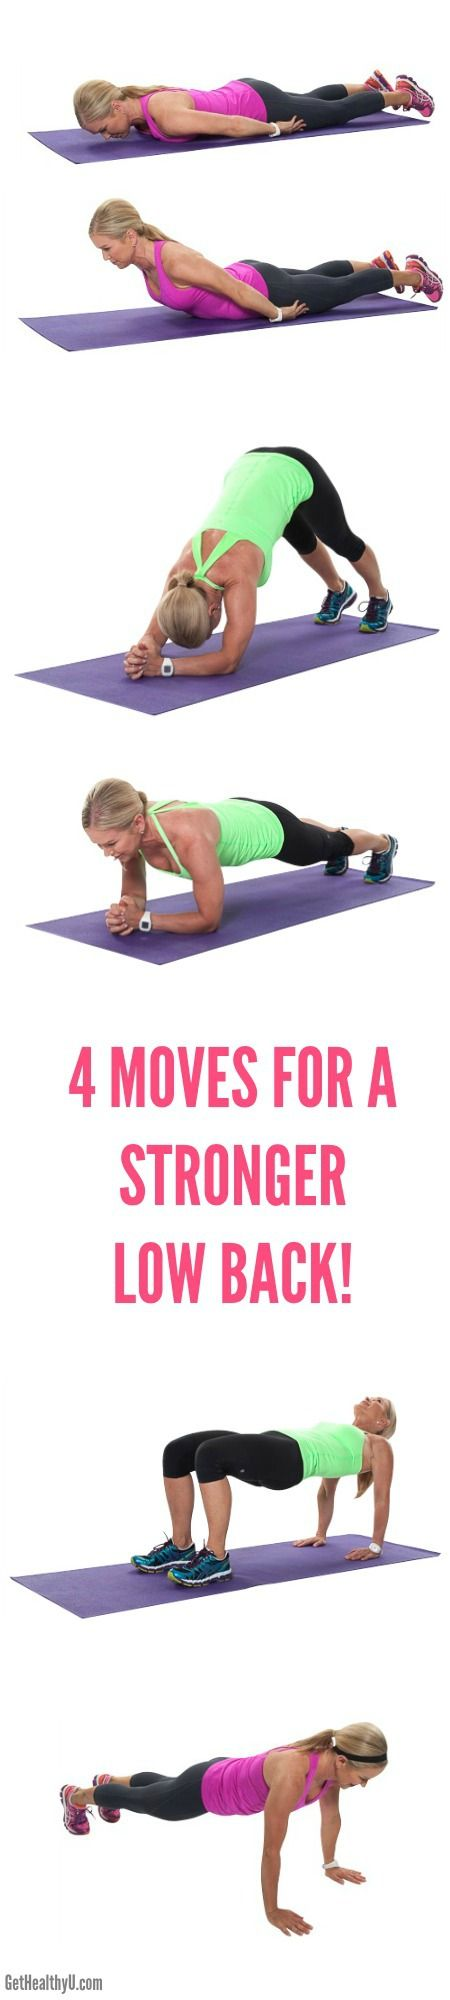 4 Moves For A Stronger Low Back - Get Healthy U